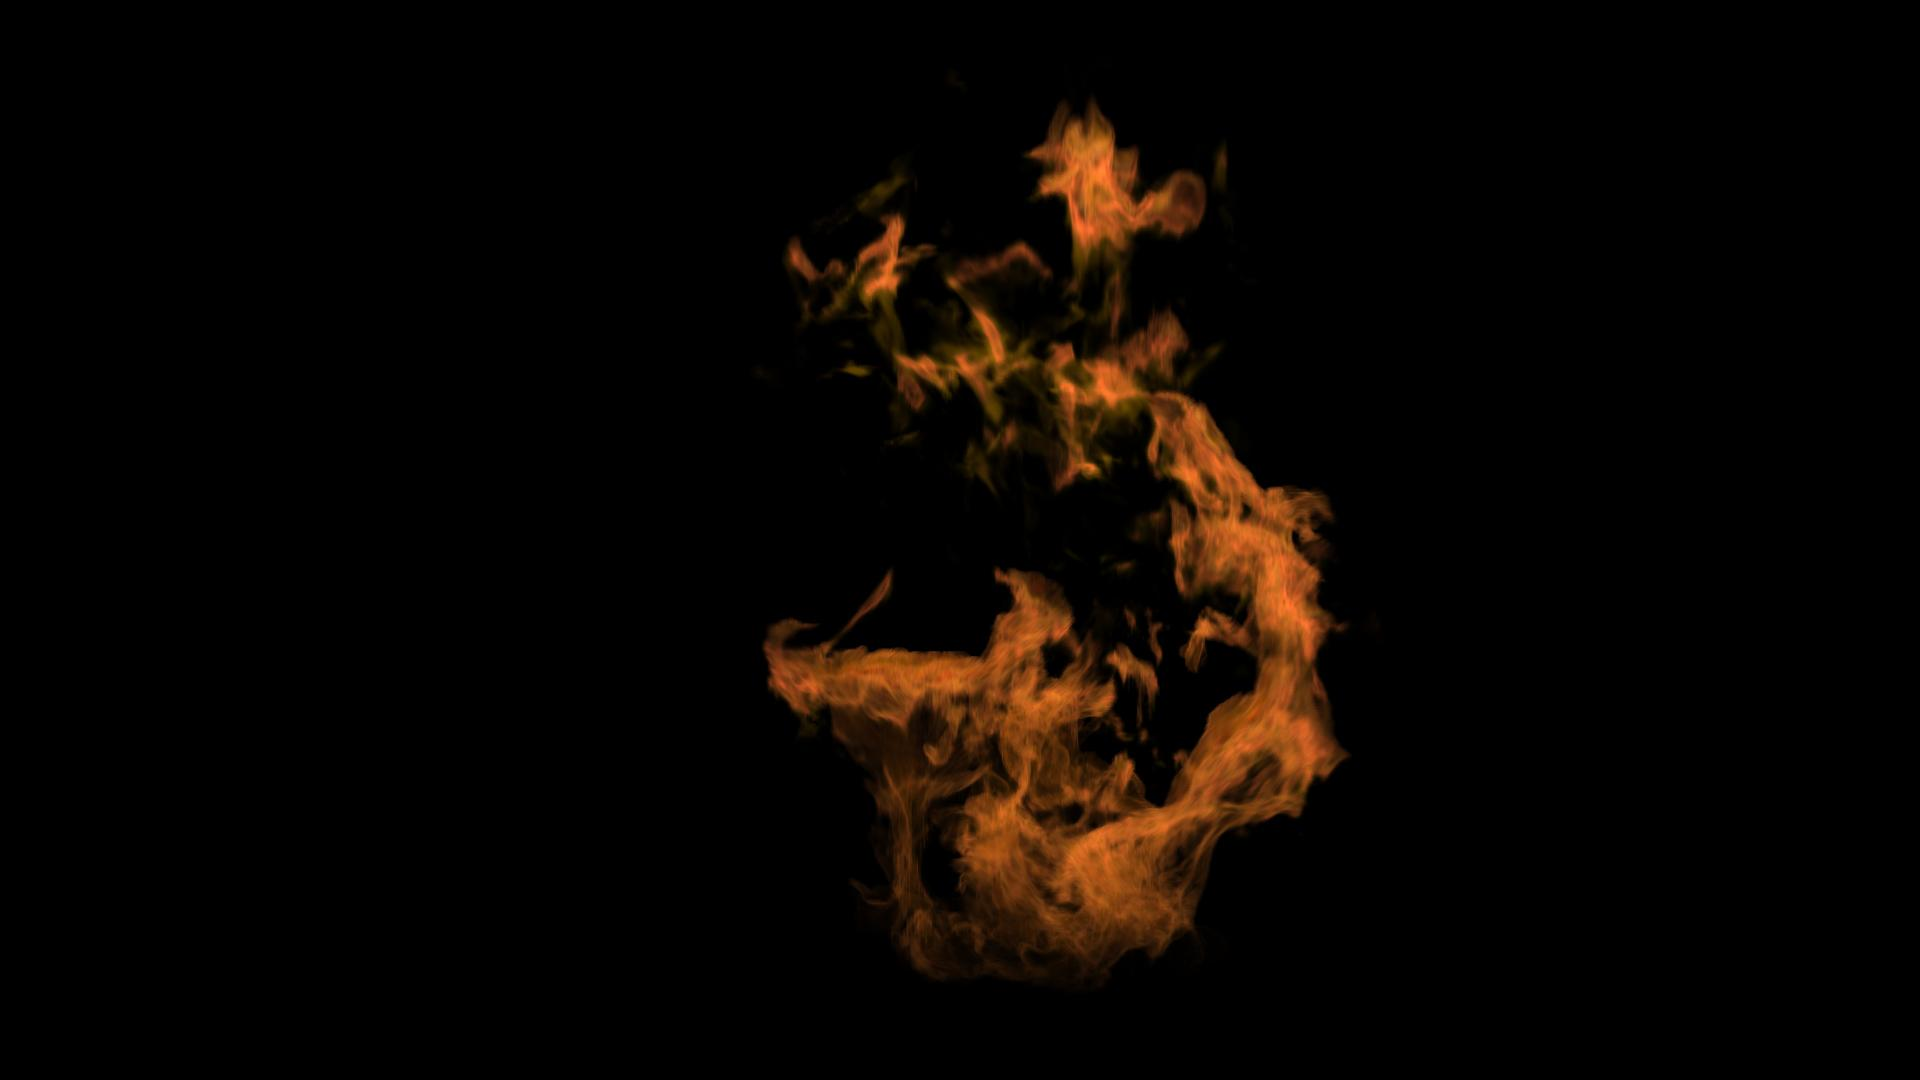 VFX Fire Simulation